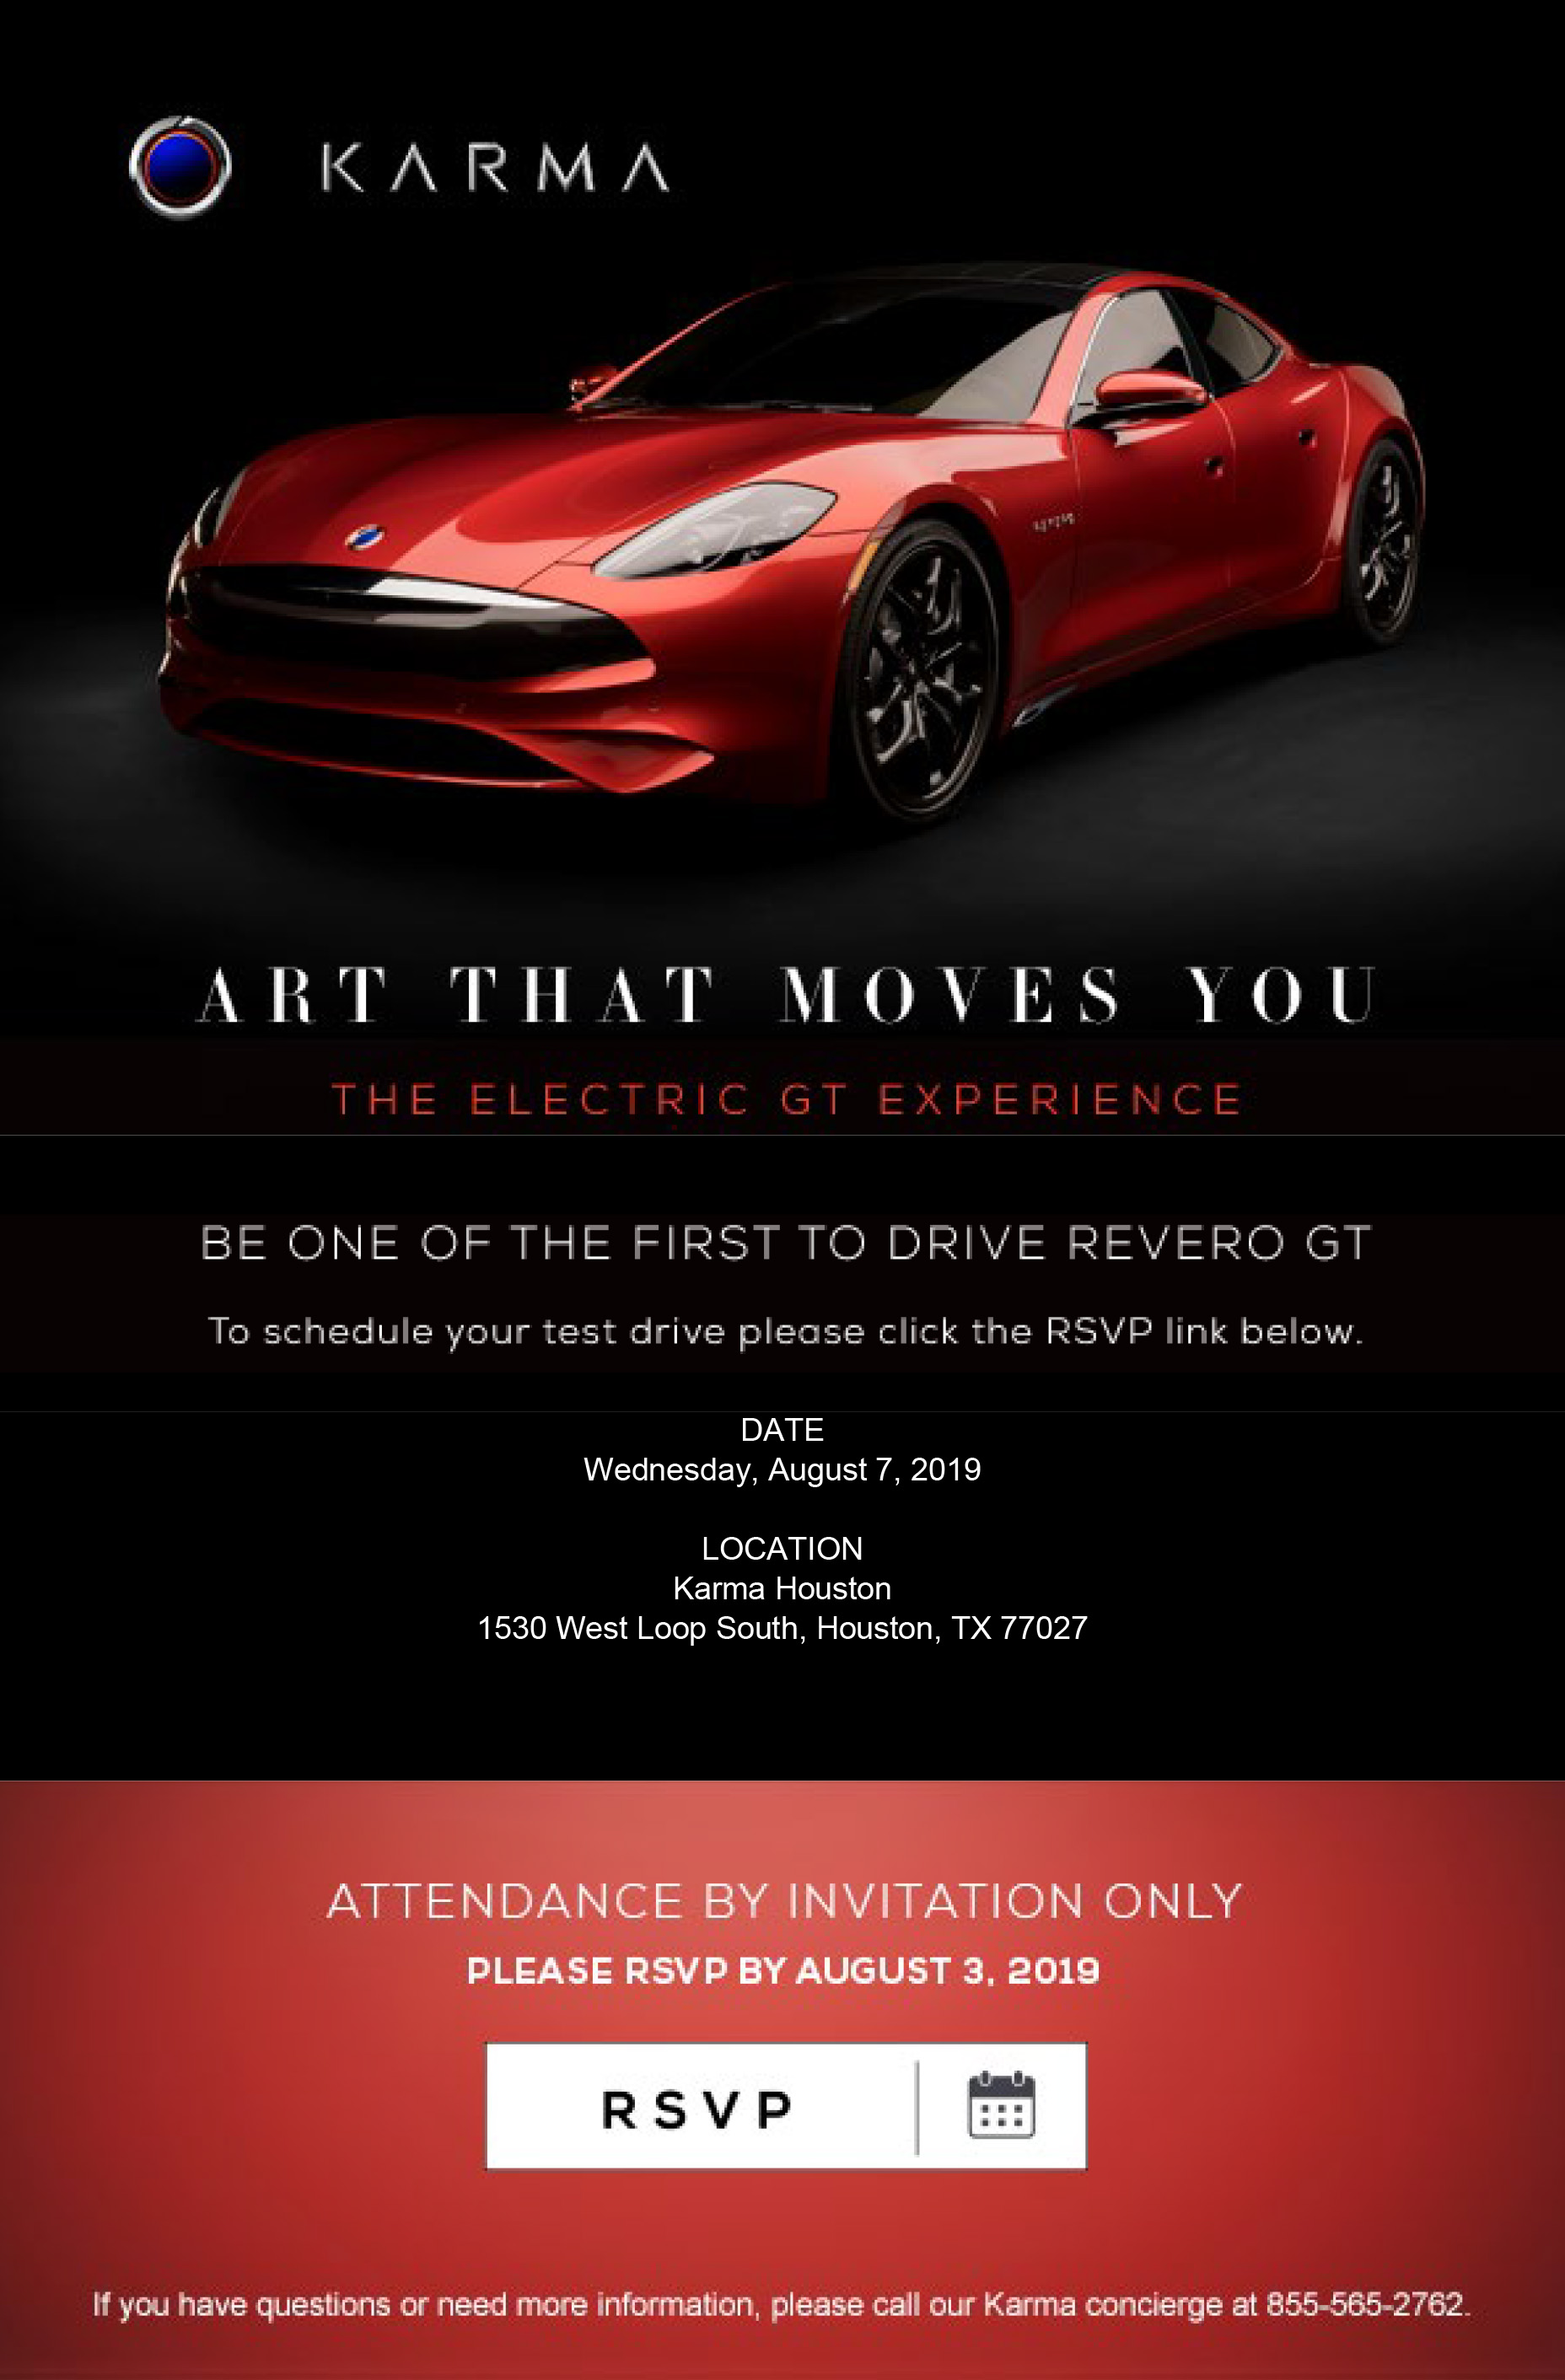 Karma Houston Driving Event with Karma Revero GT